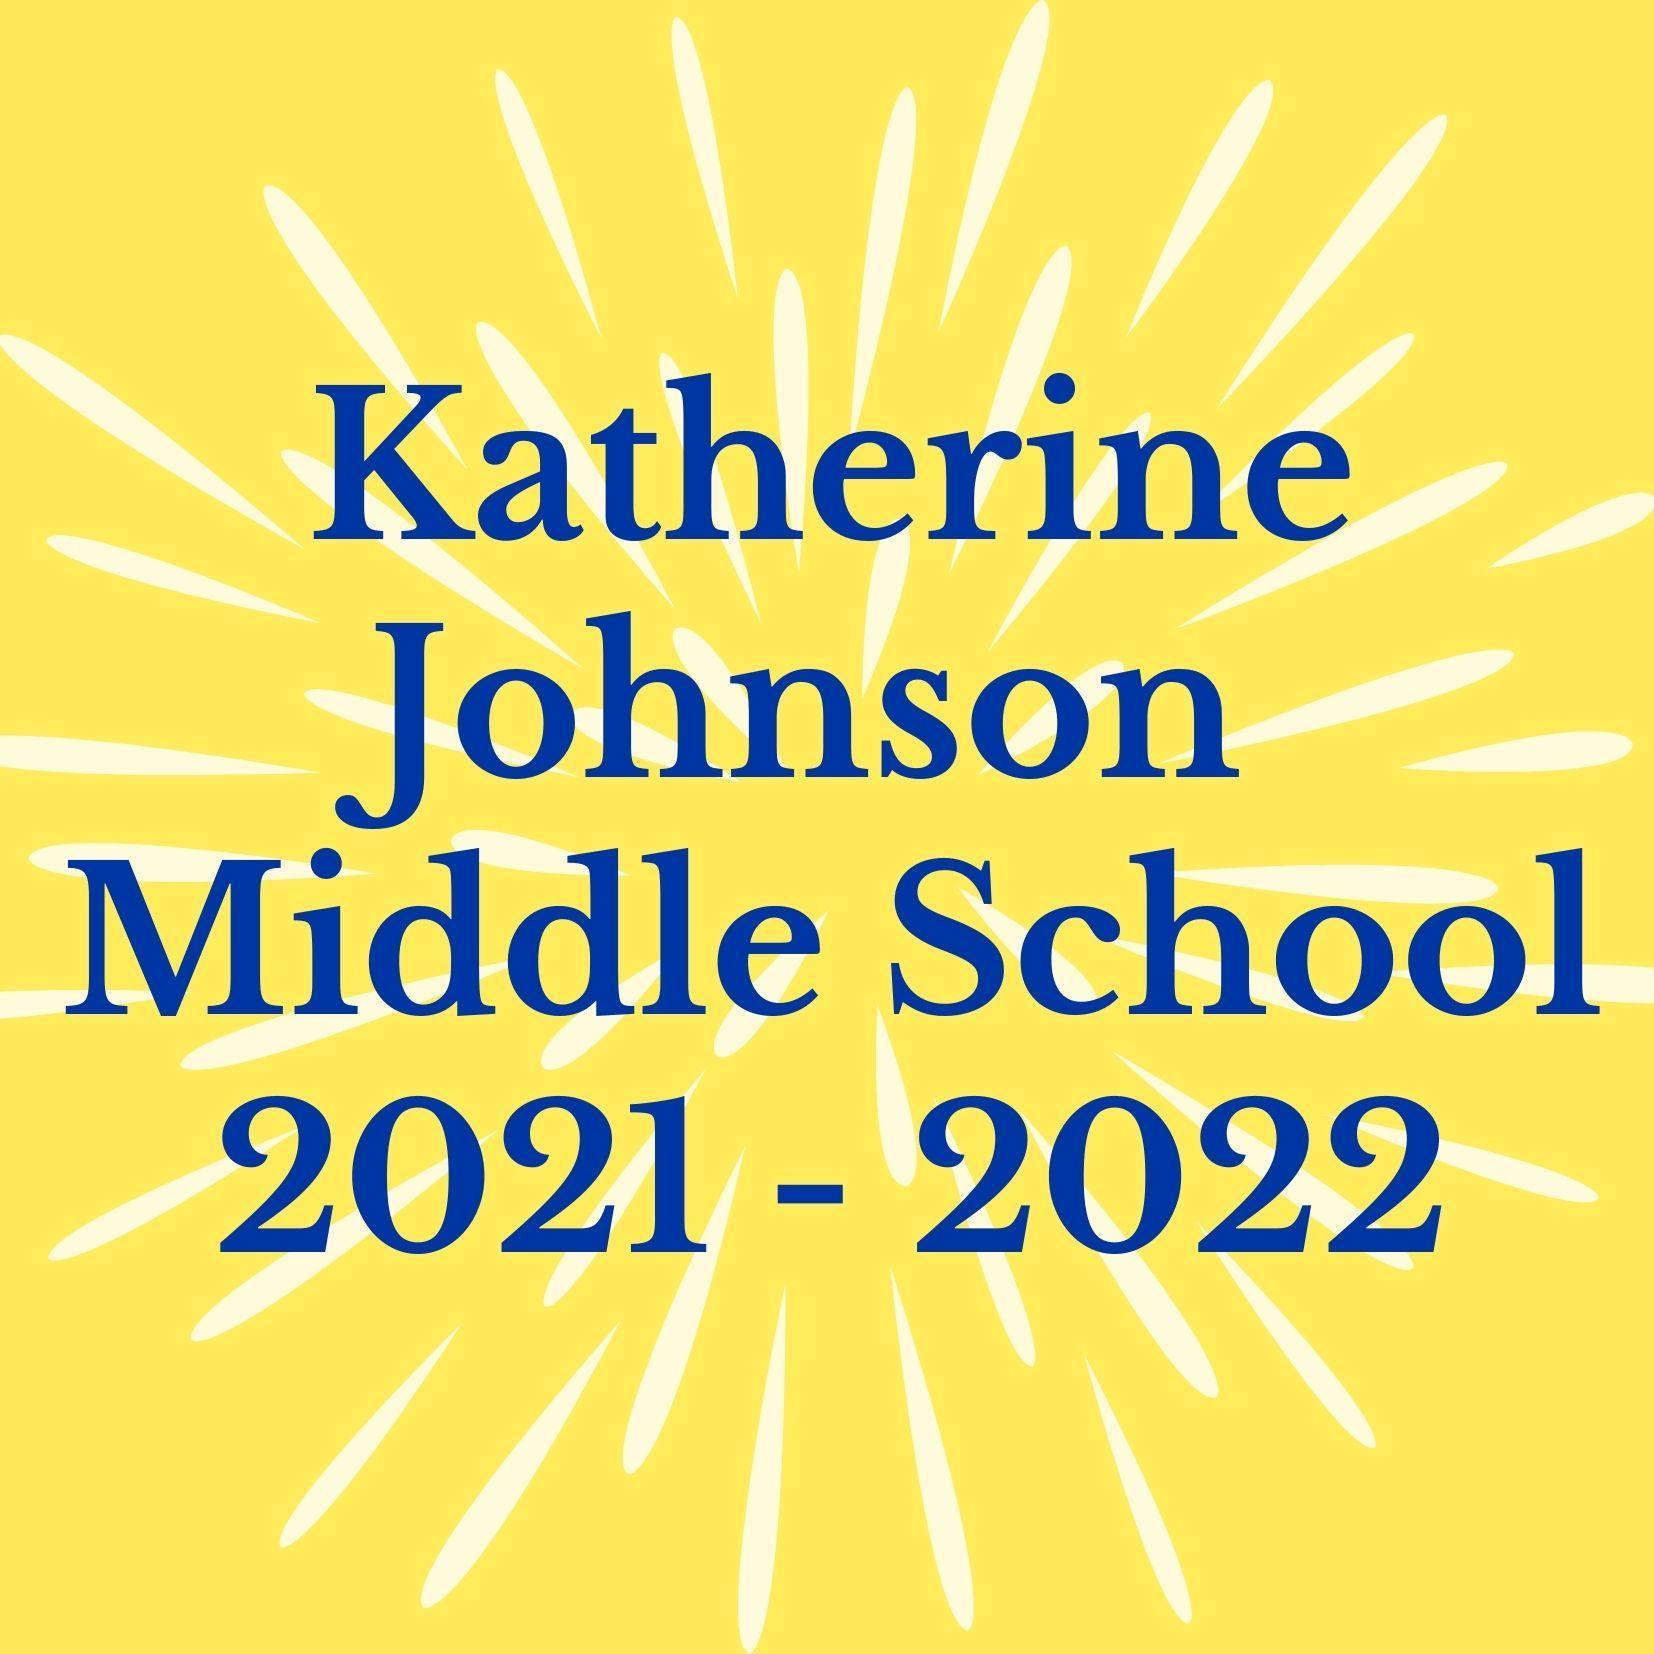 logo for katherine johnson middle school